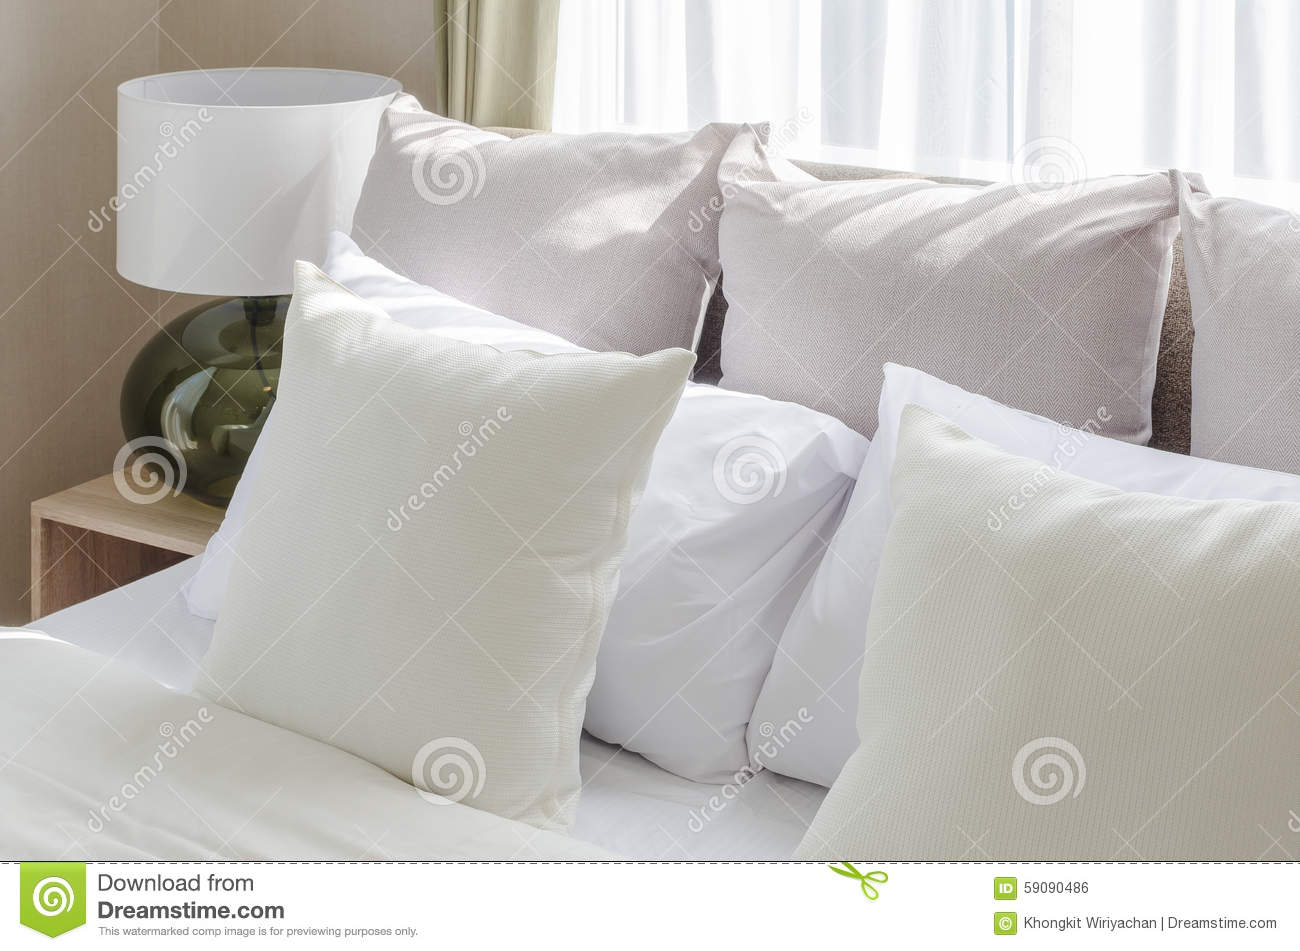 Modern Bedroom Pillows : White pillows on bed in modern bedroom